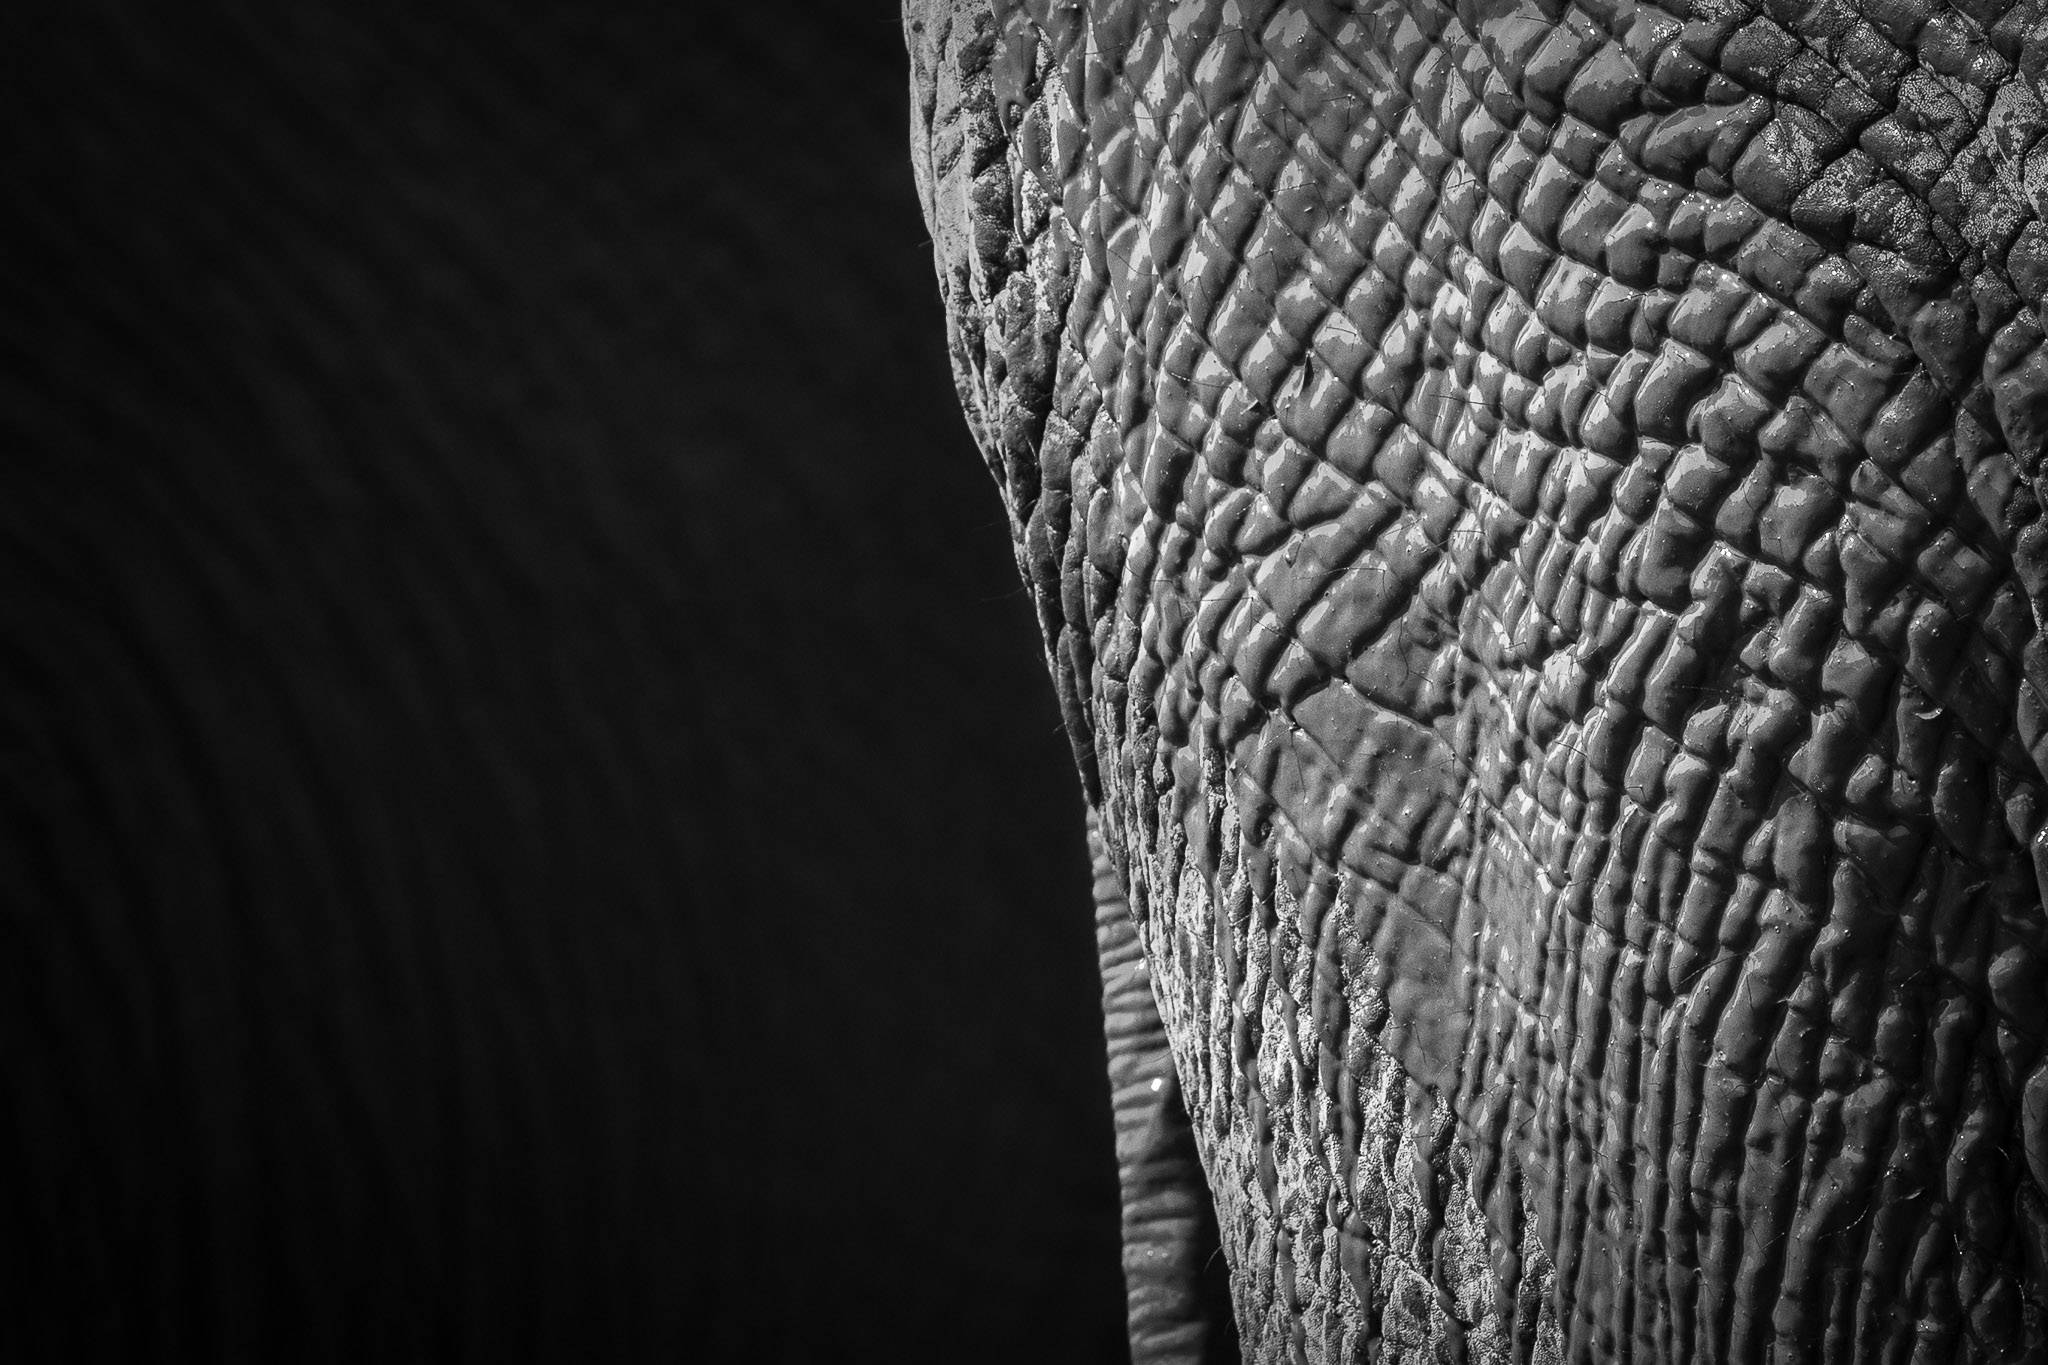 Close up of rough elephant skin